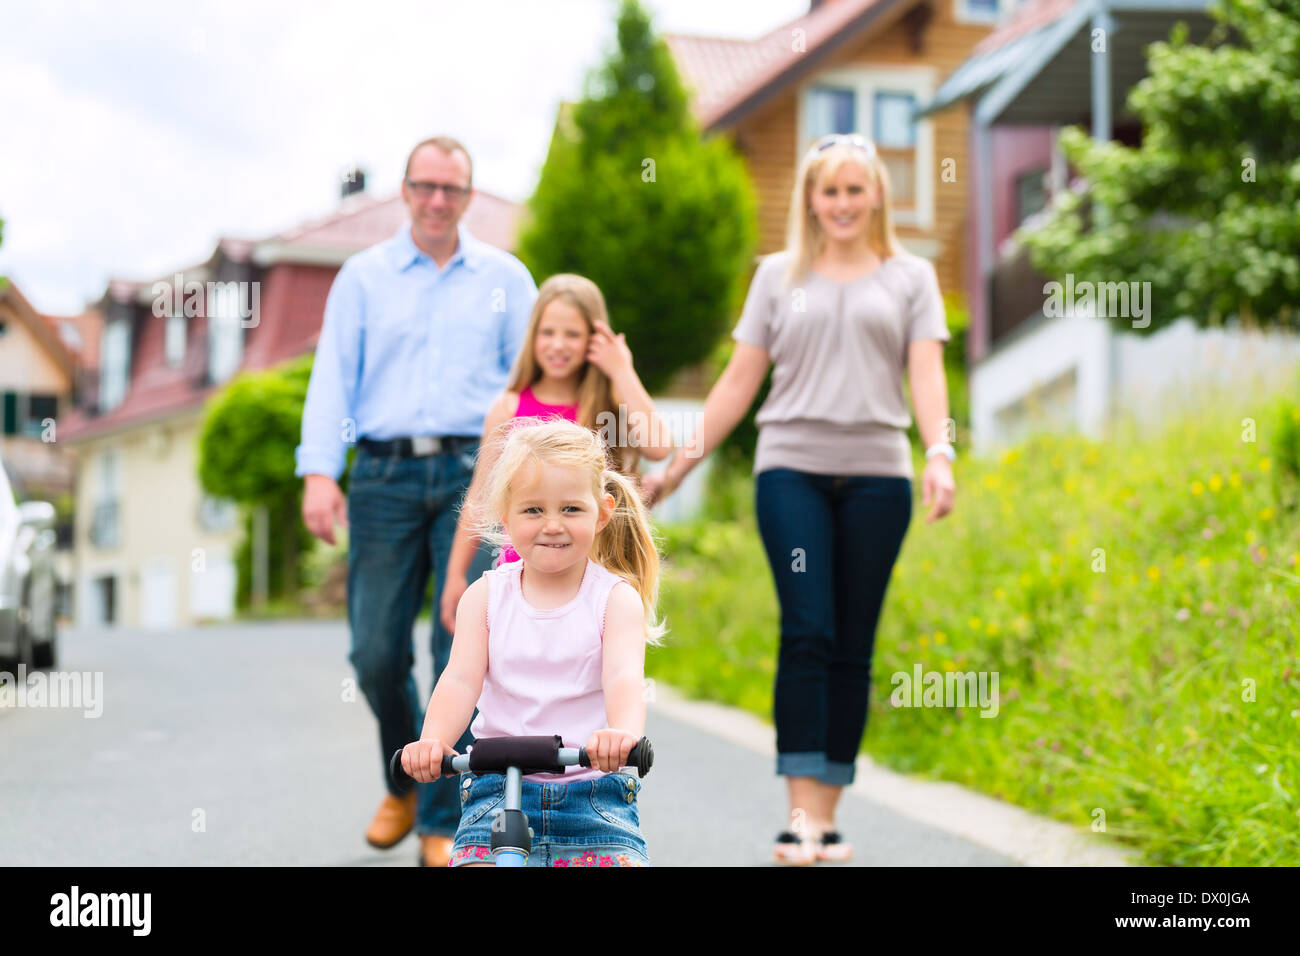 Young family with Mother, father and daughters walking through a housing estate, perhaps they make a trip or excursion Stock Photo